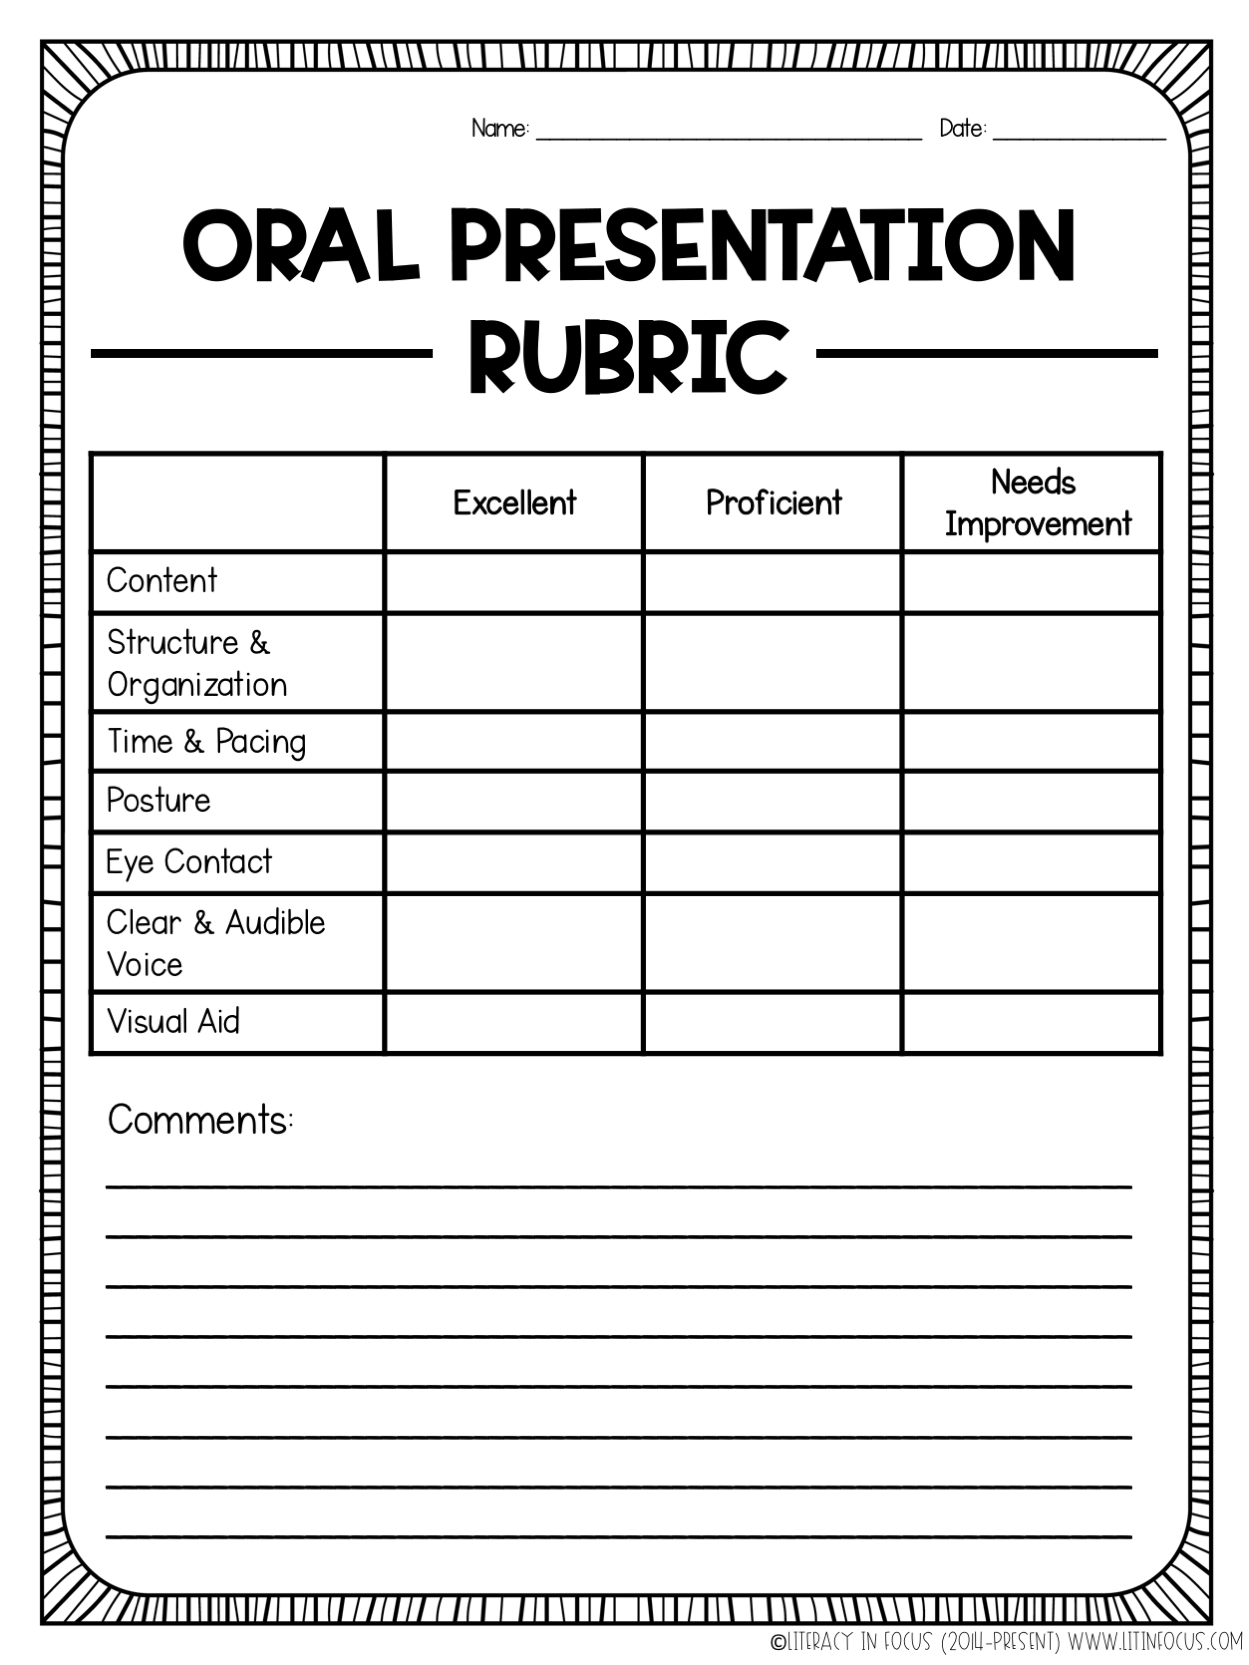 Free Oral Presentation Rubric Provide Your Students With Clear Grading Expectations For Their Next Presentati Presentation Rubric Rubrics Student Presentation